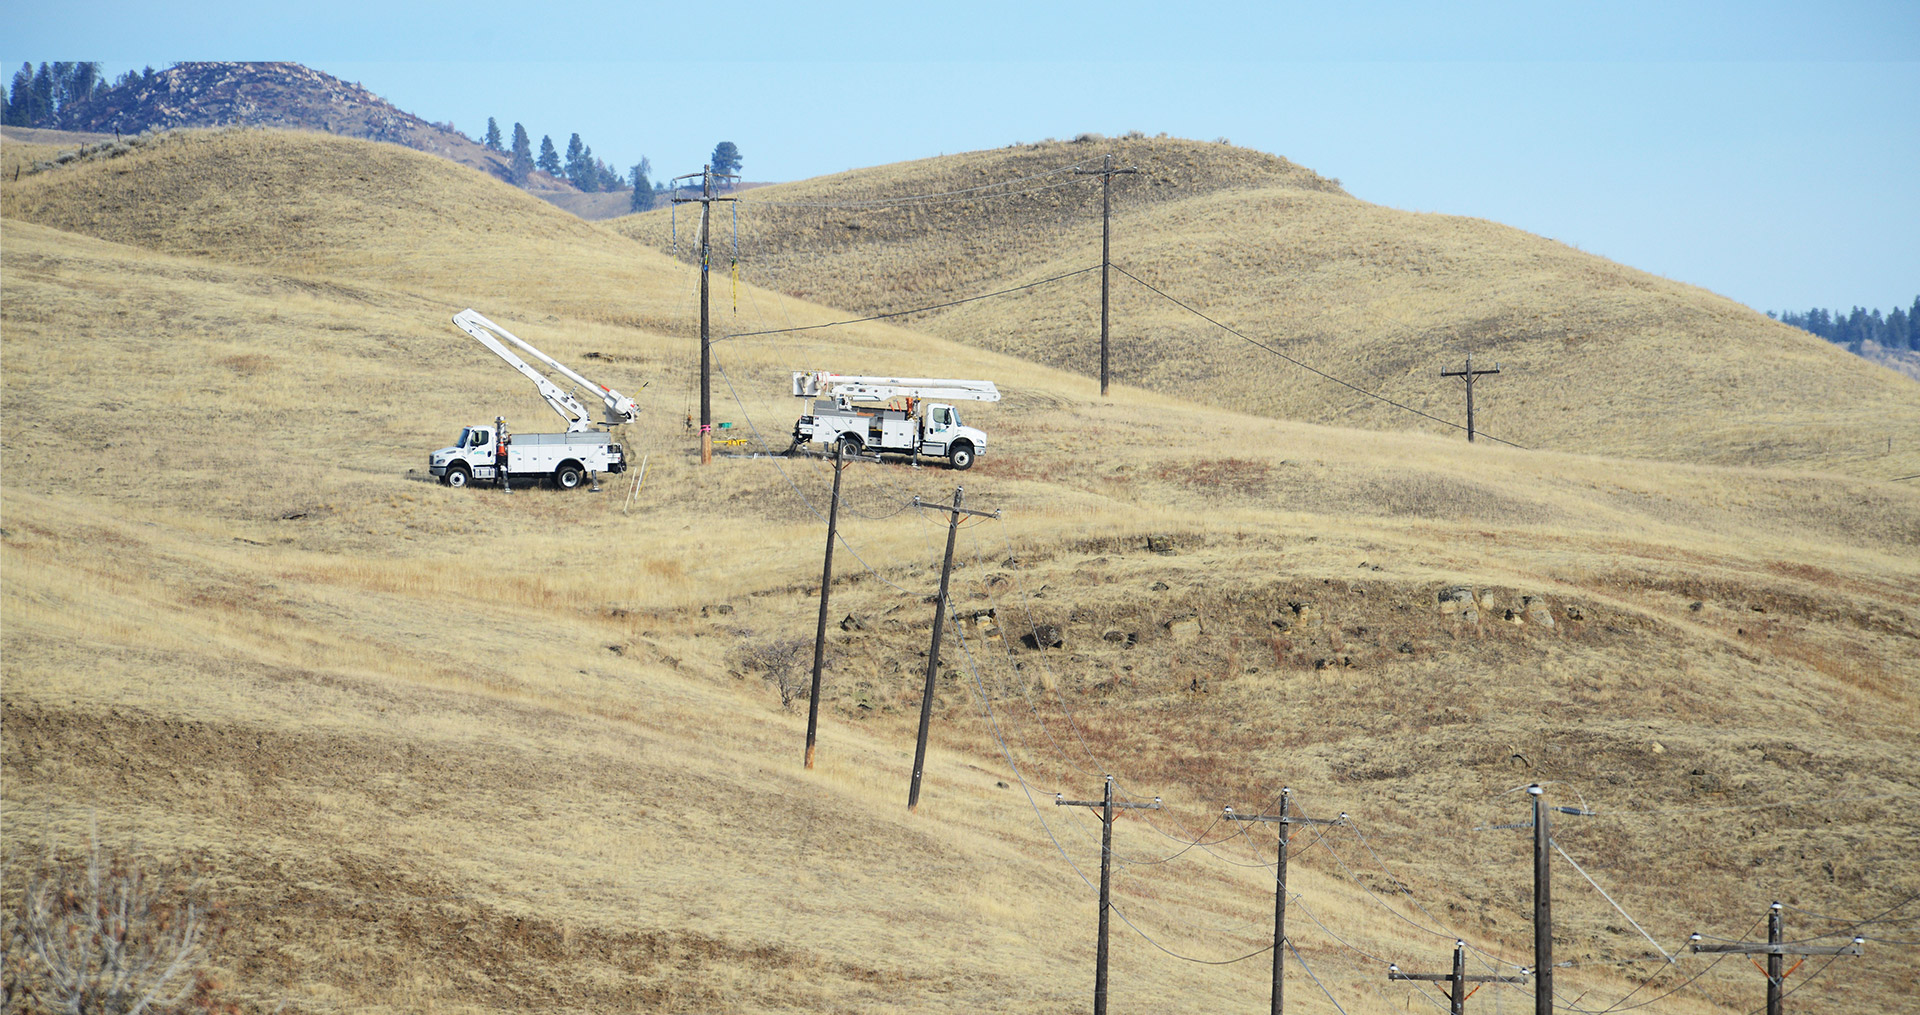 Image of trucks by power poles in the foothills